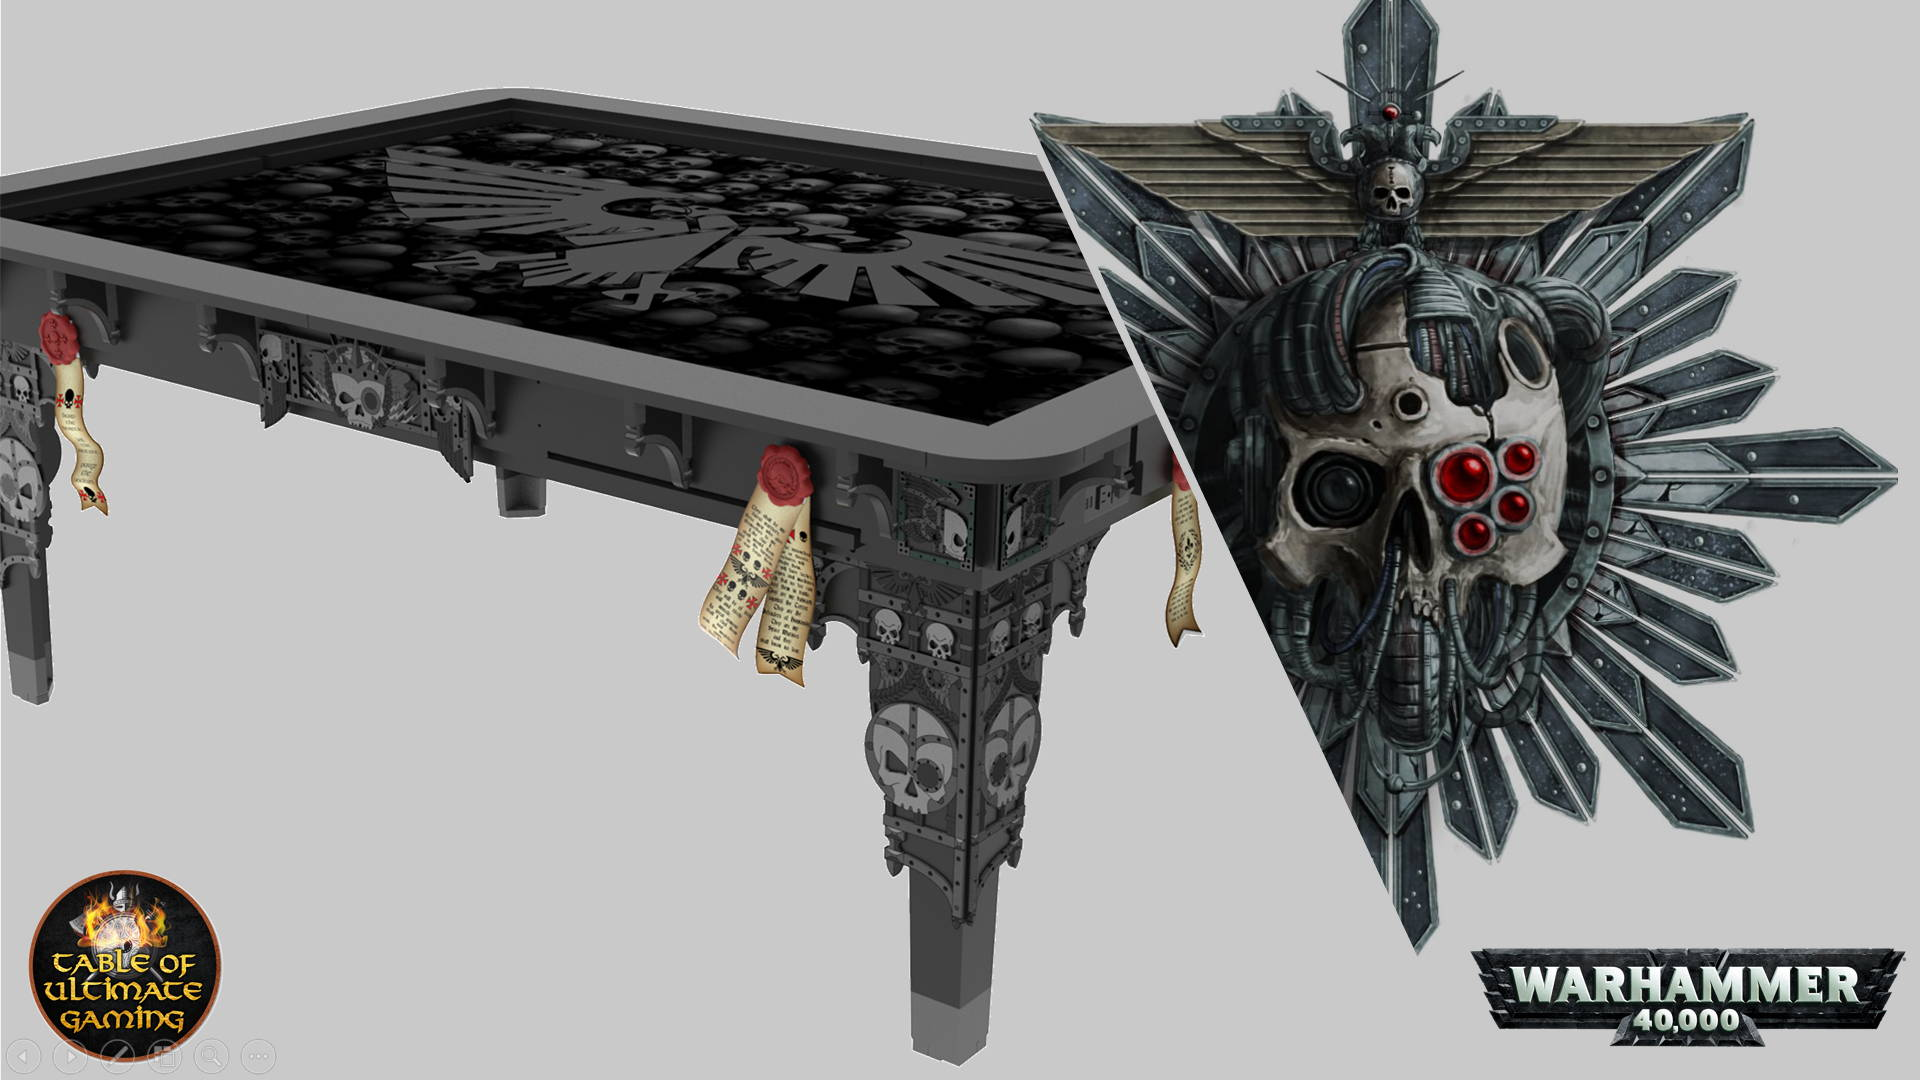 Warhammer Special Edition Tables Accessories Table Of Ultimate